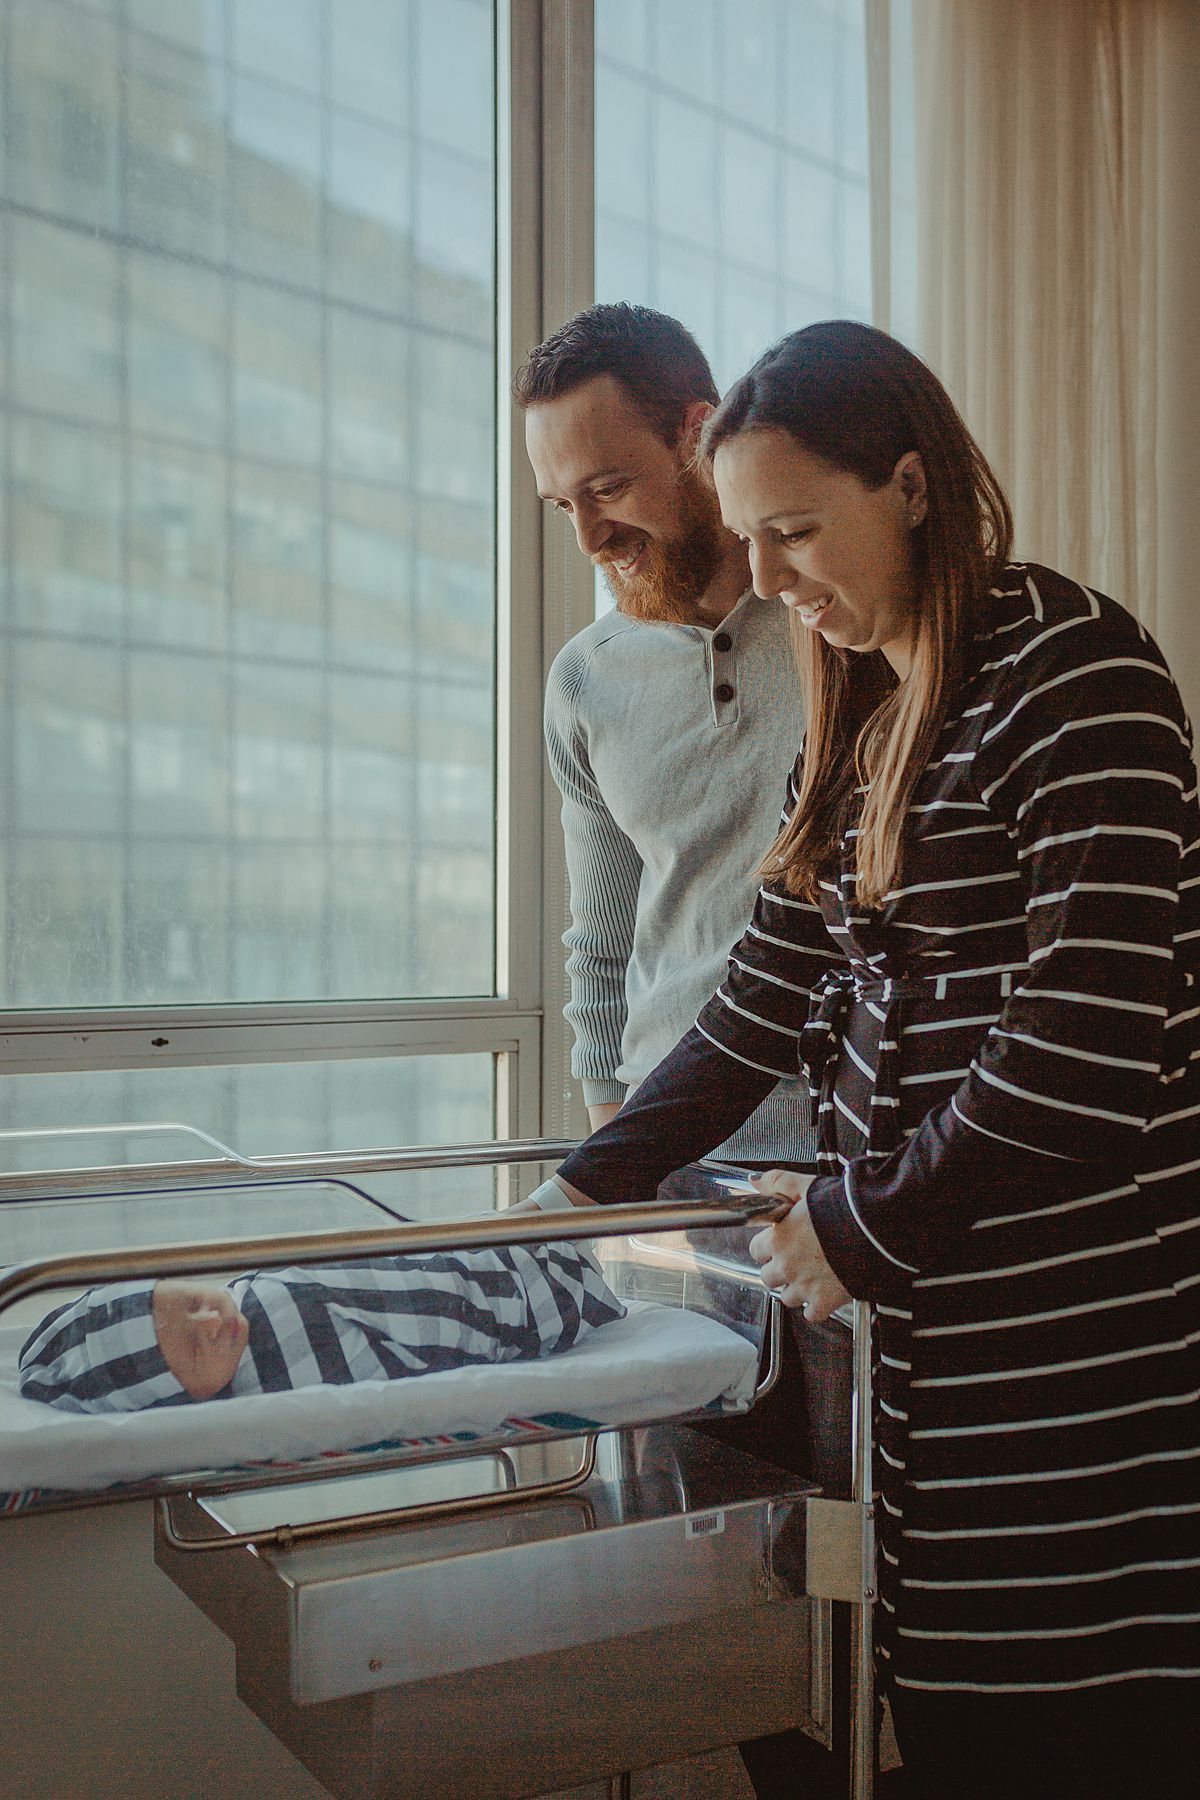 fresh 48 photo of mom and dad looking on newborn son adoringly as he sleeps in hospital bassinet in nyc fresh 48 photo shoot in manhattan nyc. photo by nyc family and newborn photographer krystil mcdowall